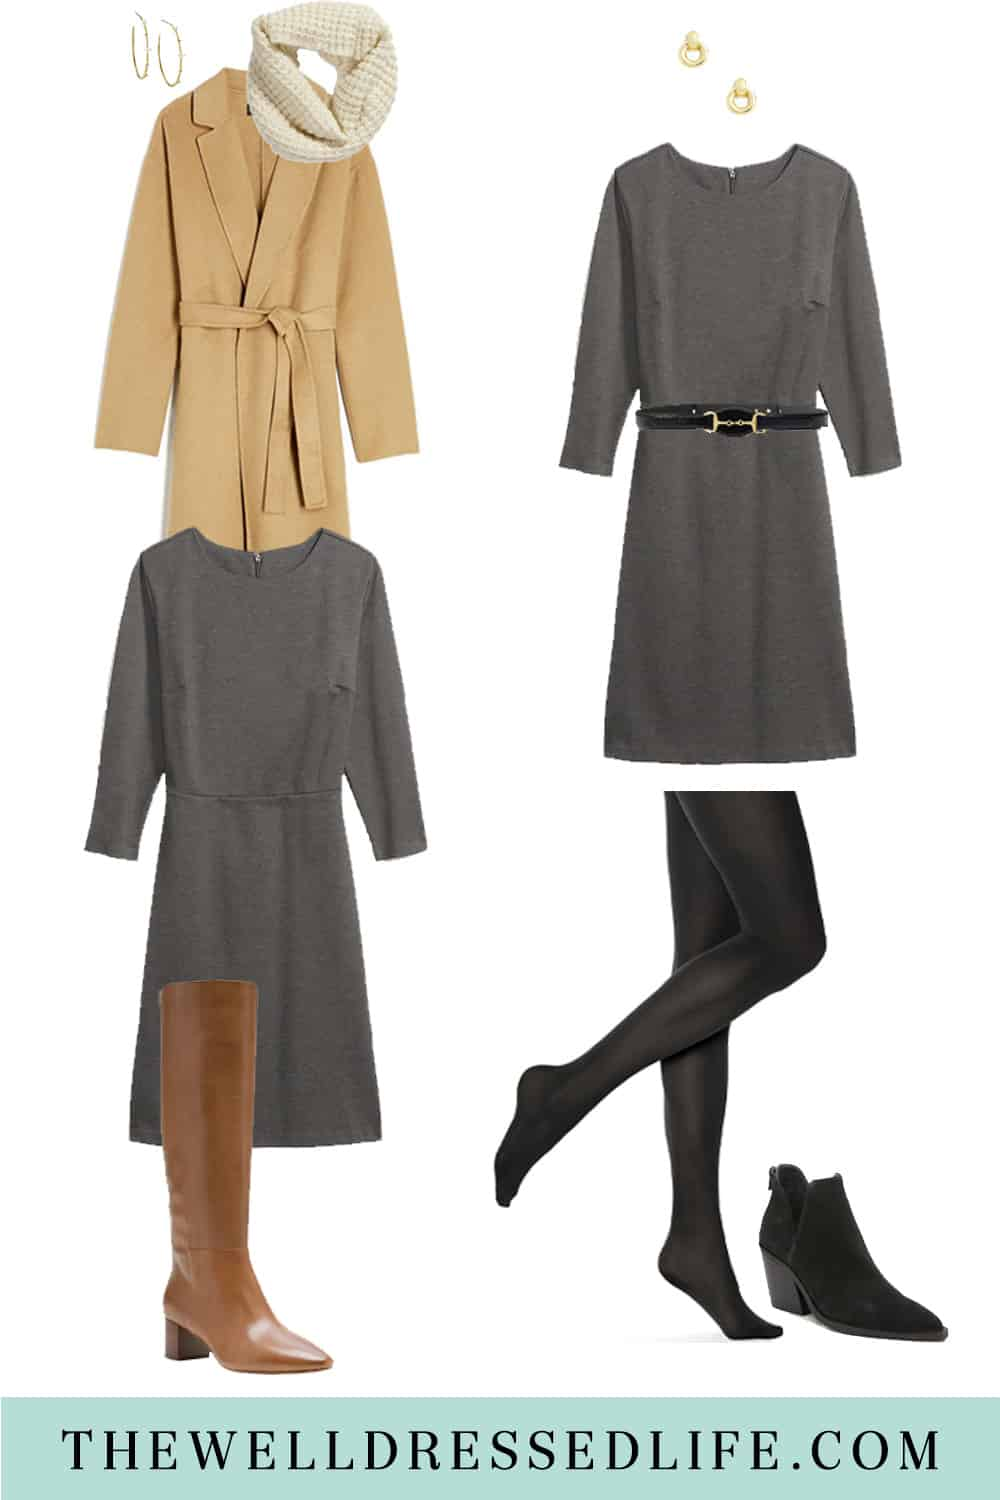 How to Wear a Simple Grey Dress Two Chic Ways